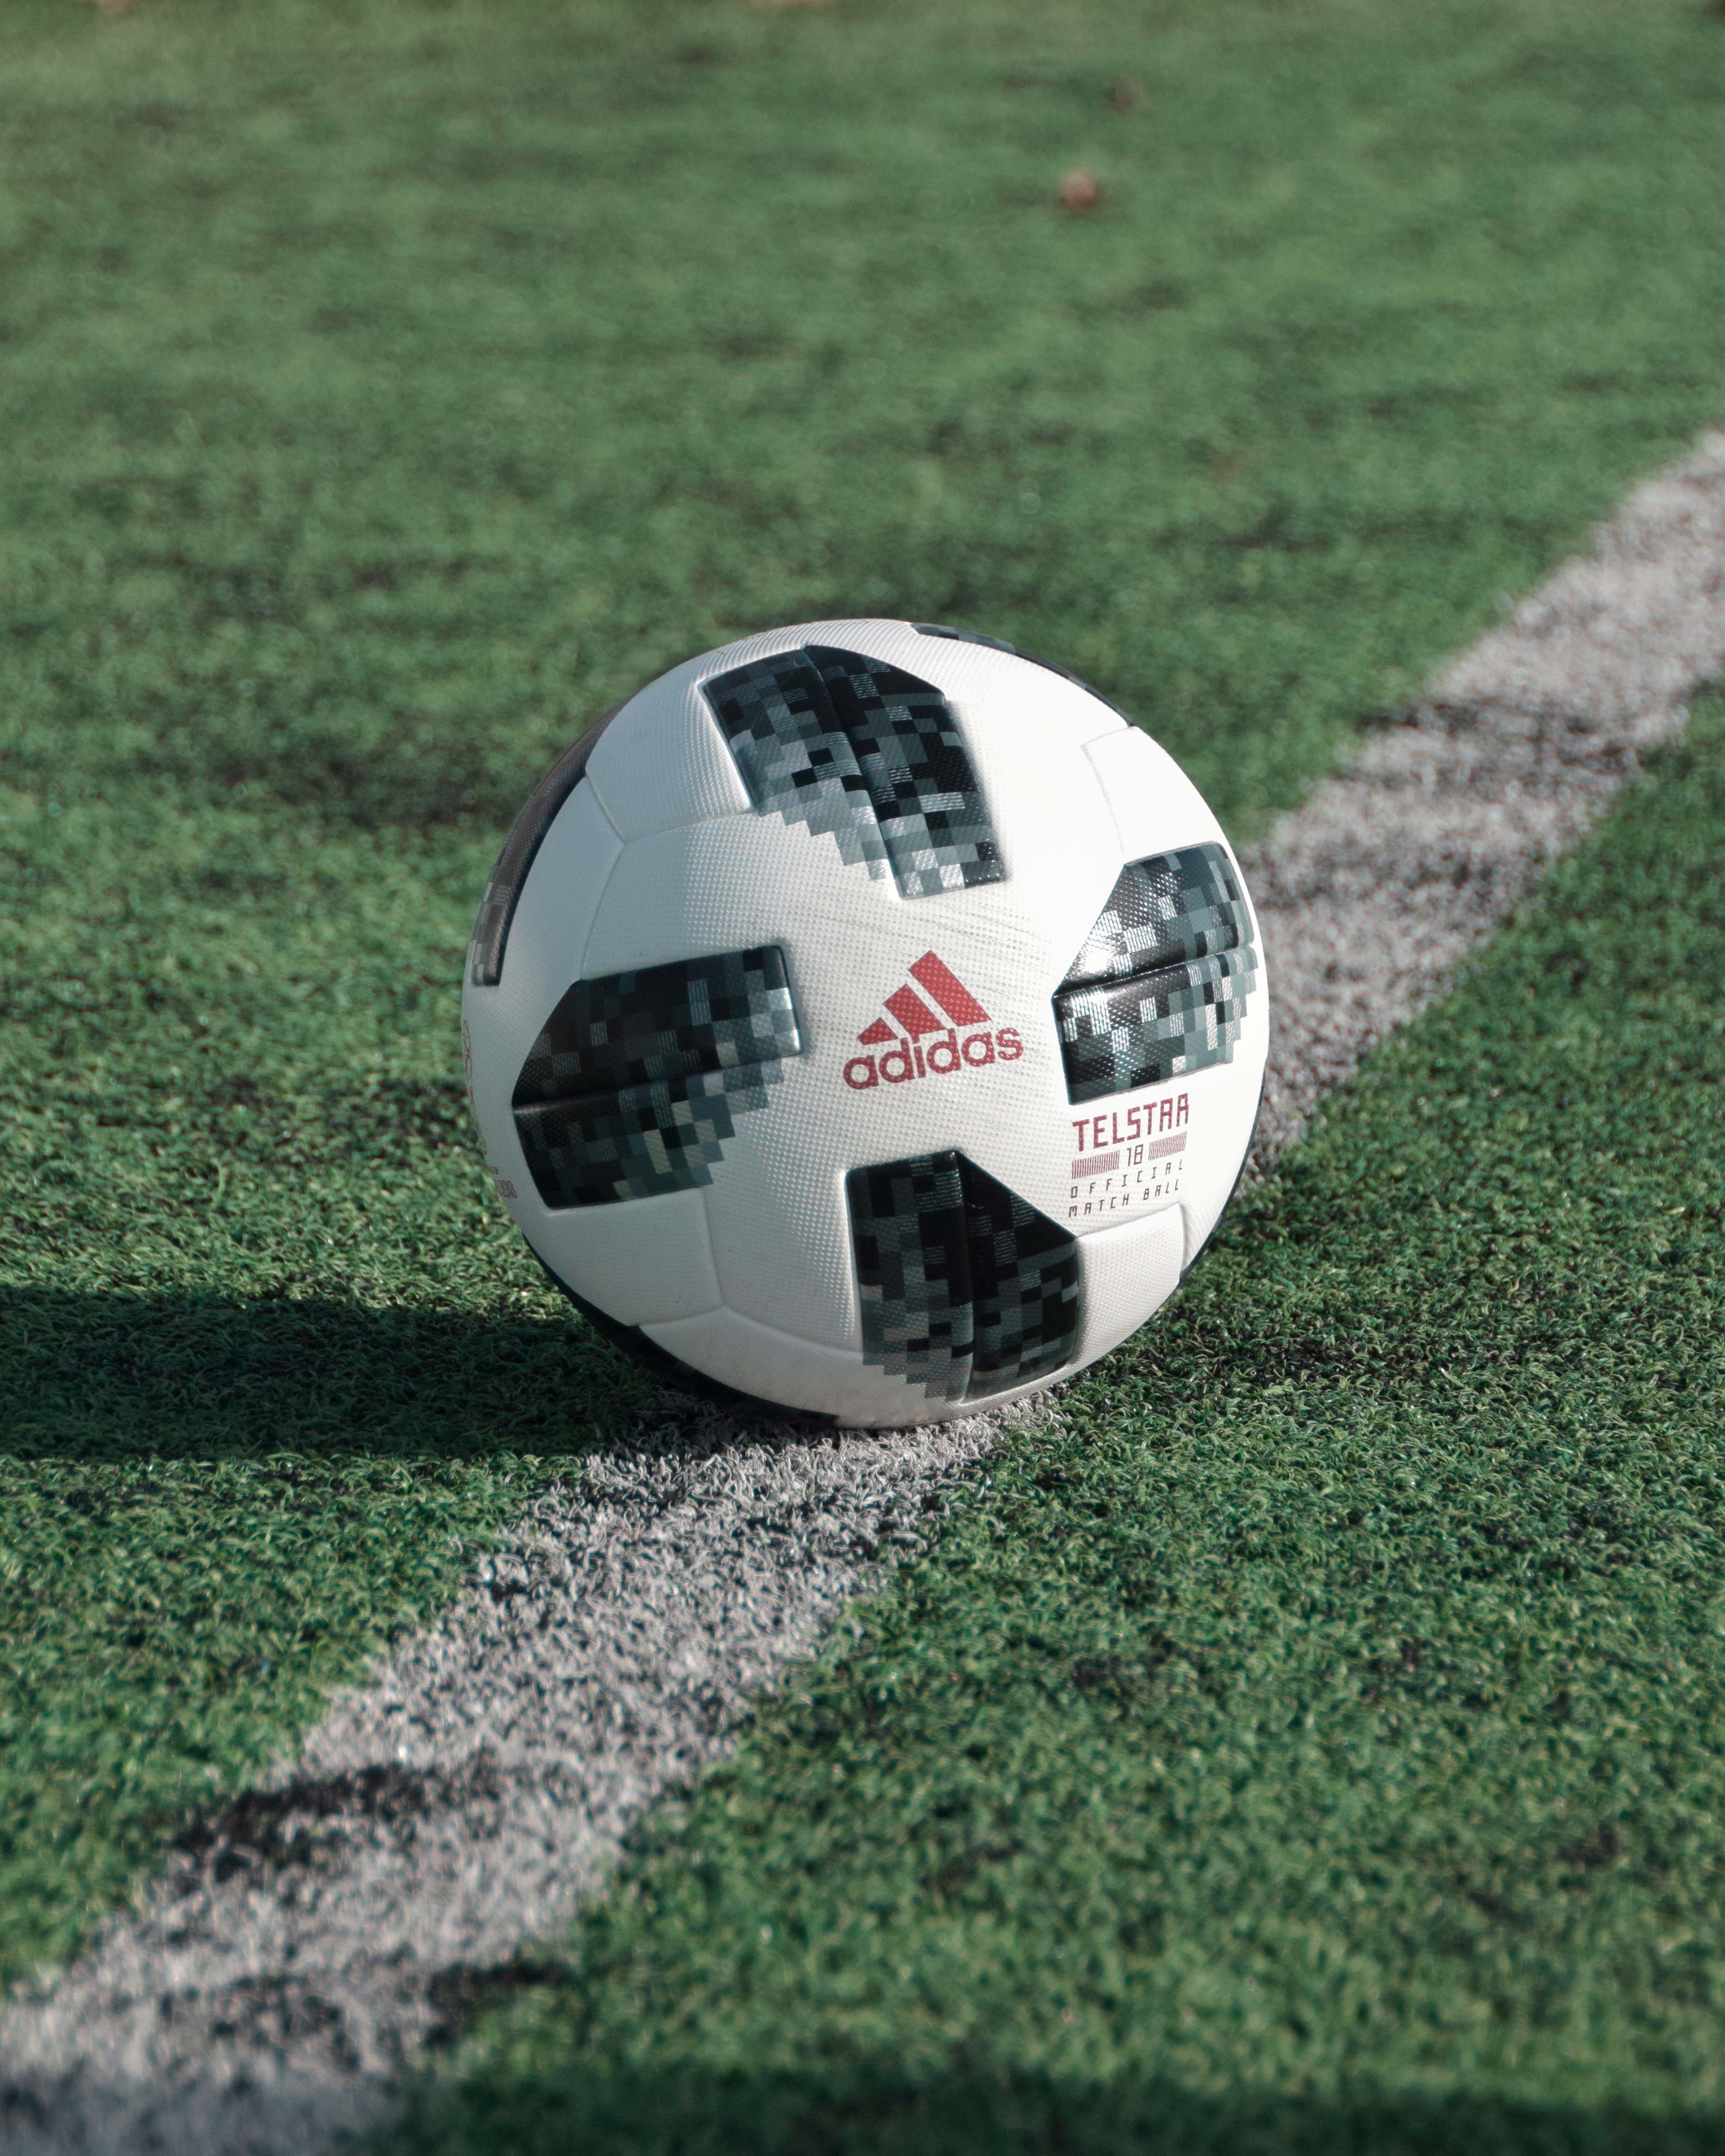 close-up photography of adidas soccer ball on field